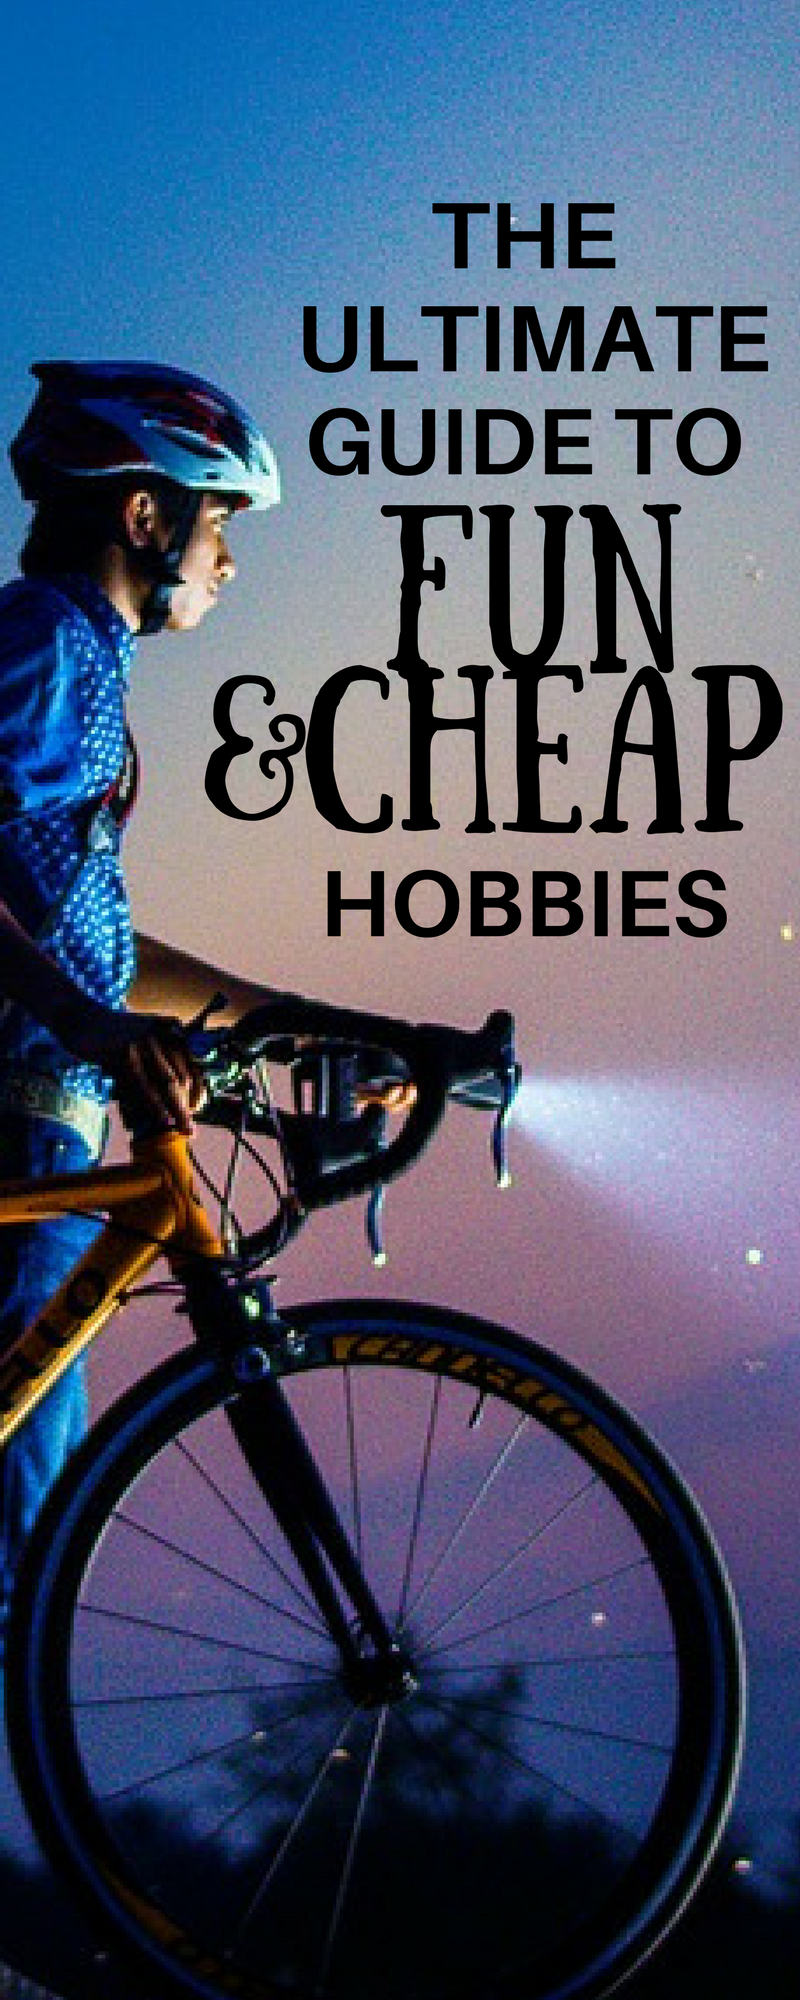 The frugal living guide array the ultimate guide to fun and cheap hobbies frugal living how to rh pinterest fandeluxe Choice Image